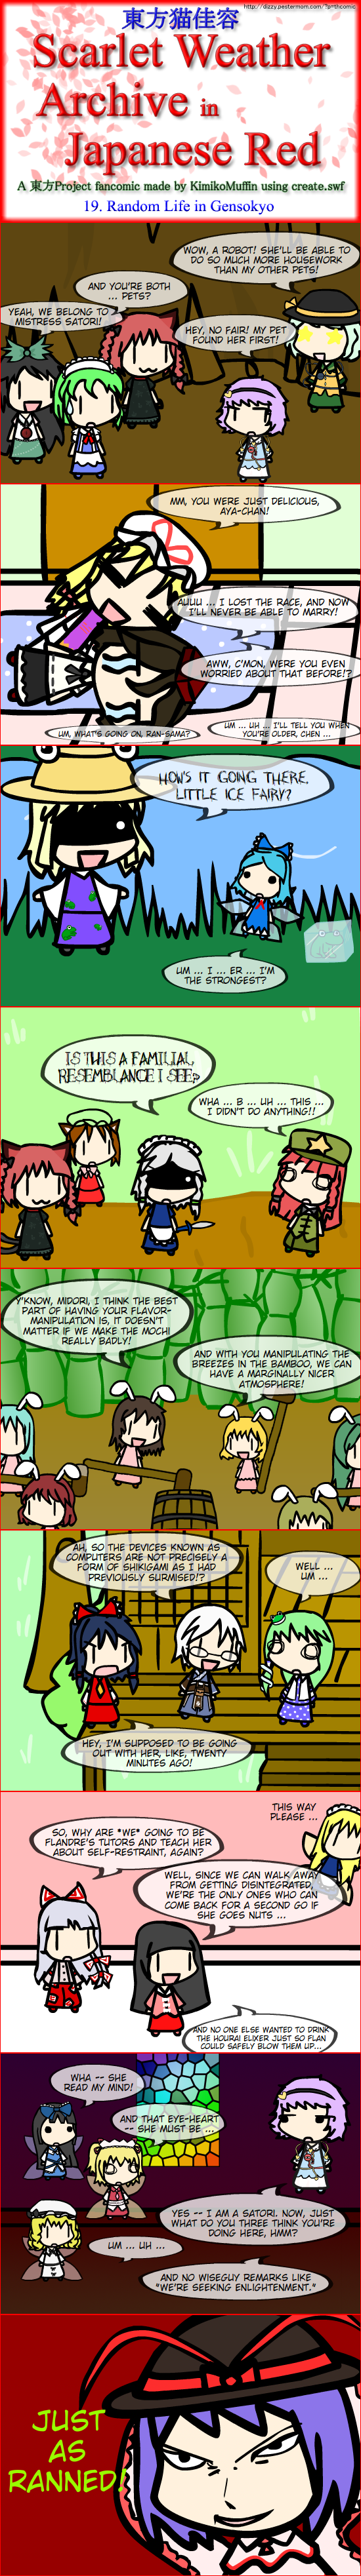 Touhou Nekokayou: Scarlet Weather Archive in Japanese Red #19